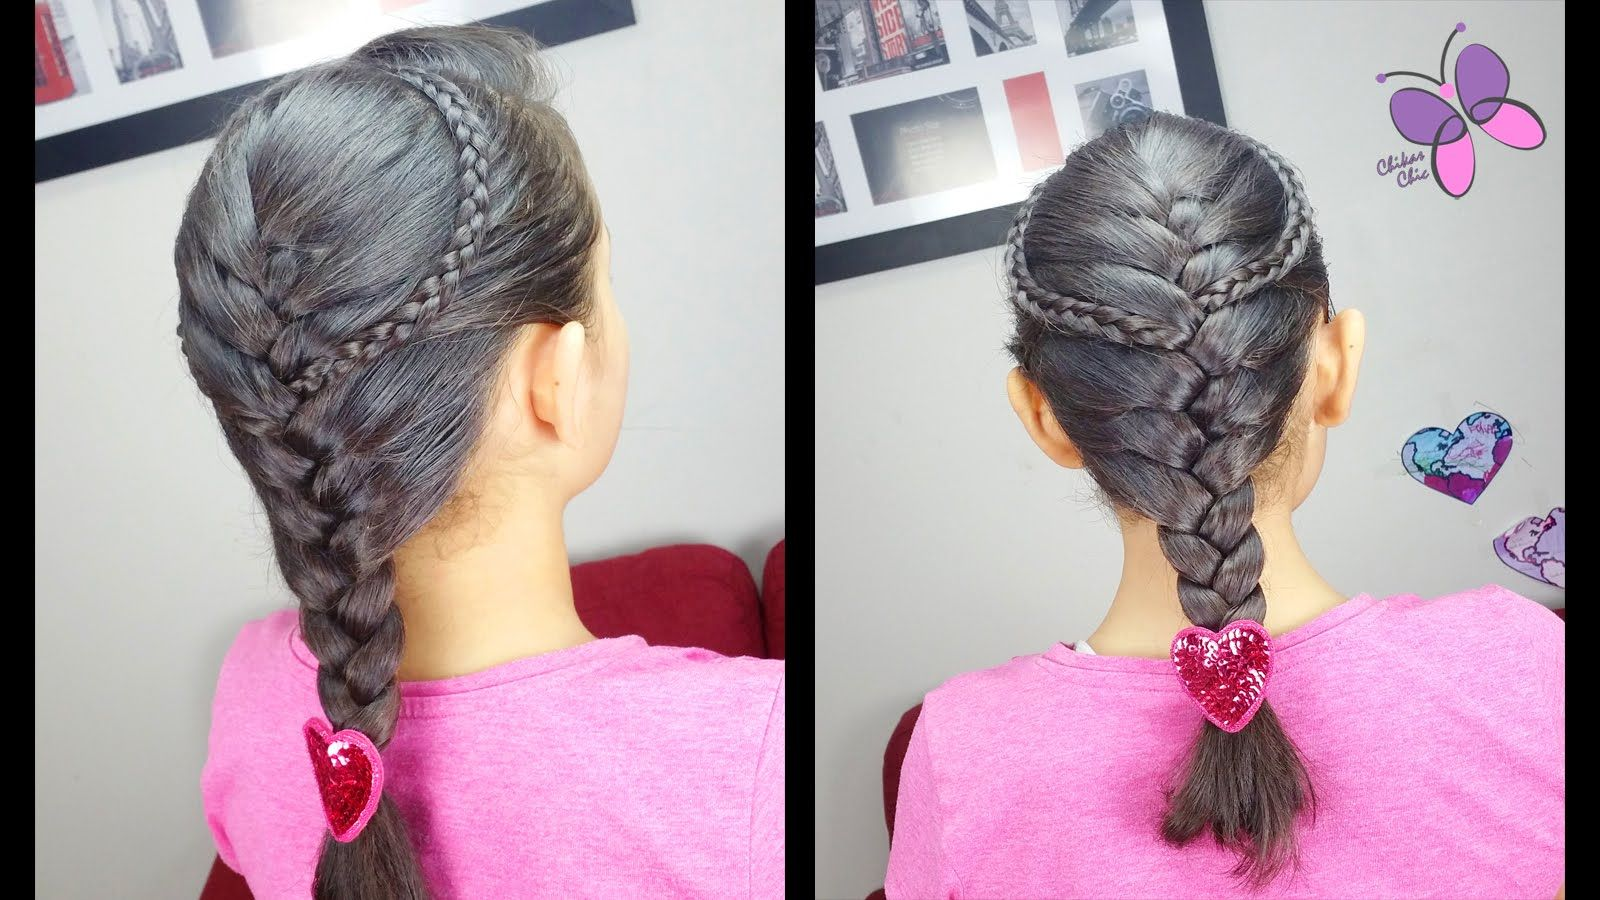 Accented french braid classic braids easy hairstyles braided